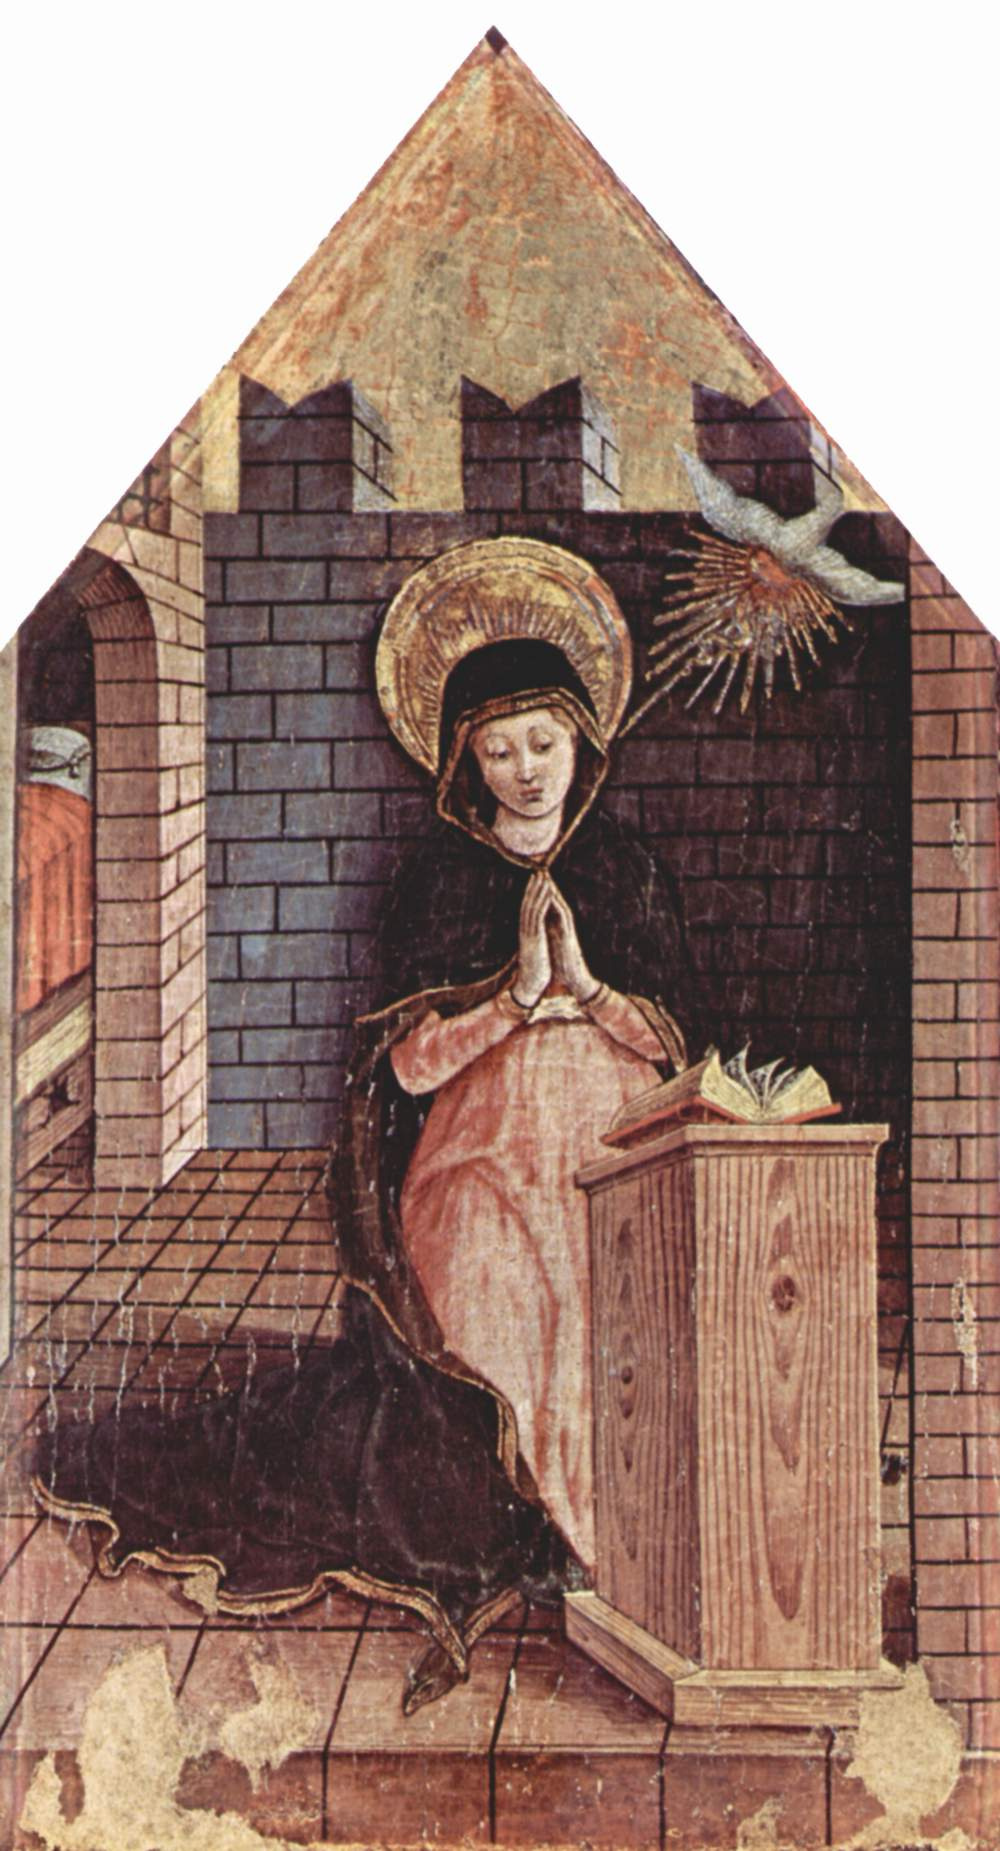 Carlo Crivelli. The Annunciation. The altar of the Church of San Silvestro at Massa Fermanagh, left pommel